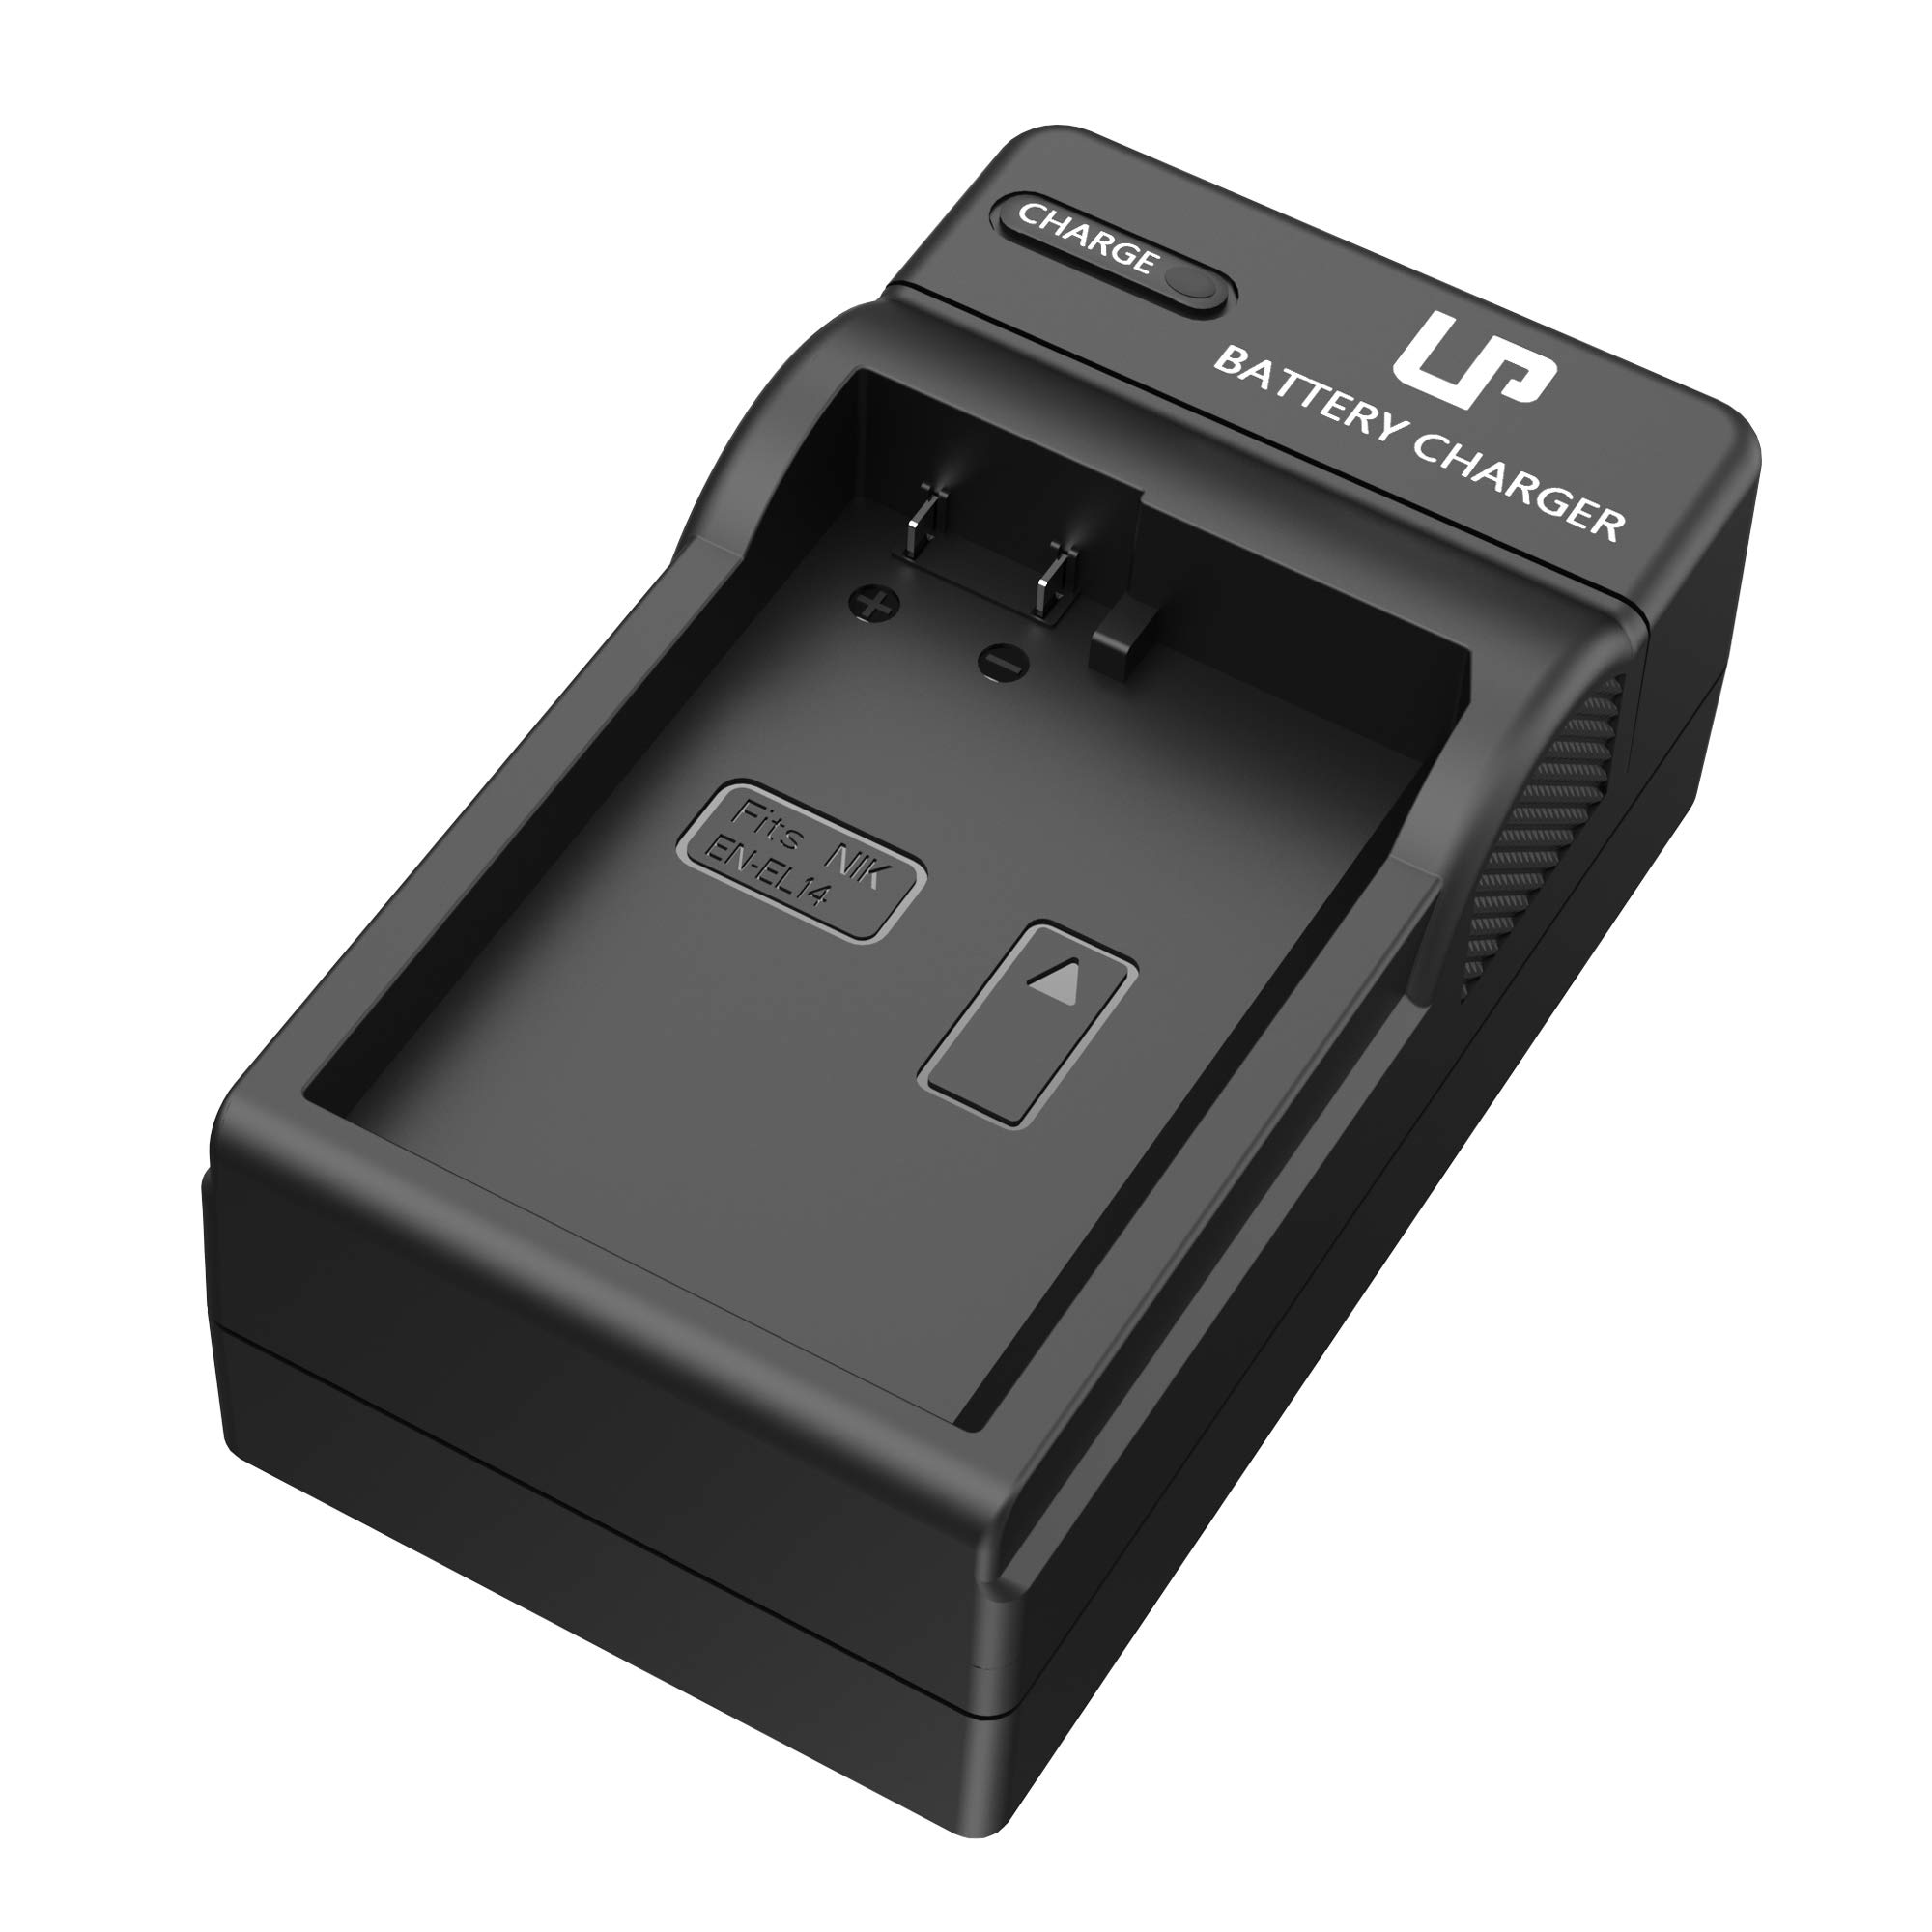 LP EN-EL14 EN EL14a Battery Charger, Compatible with Nikon D3100, D3200, D3300, D3400, D3500, D5100, D5200, D5300, D5500, D5600, DF, P7000 & More by LP